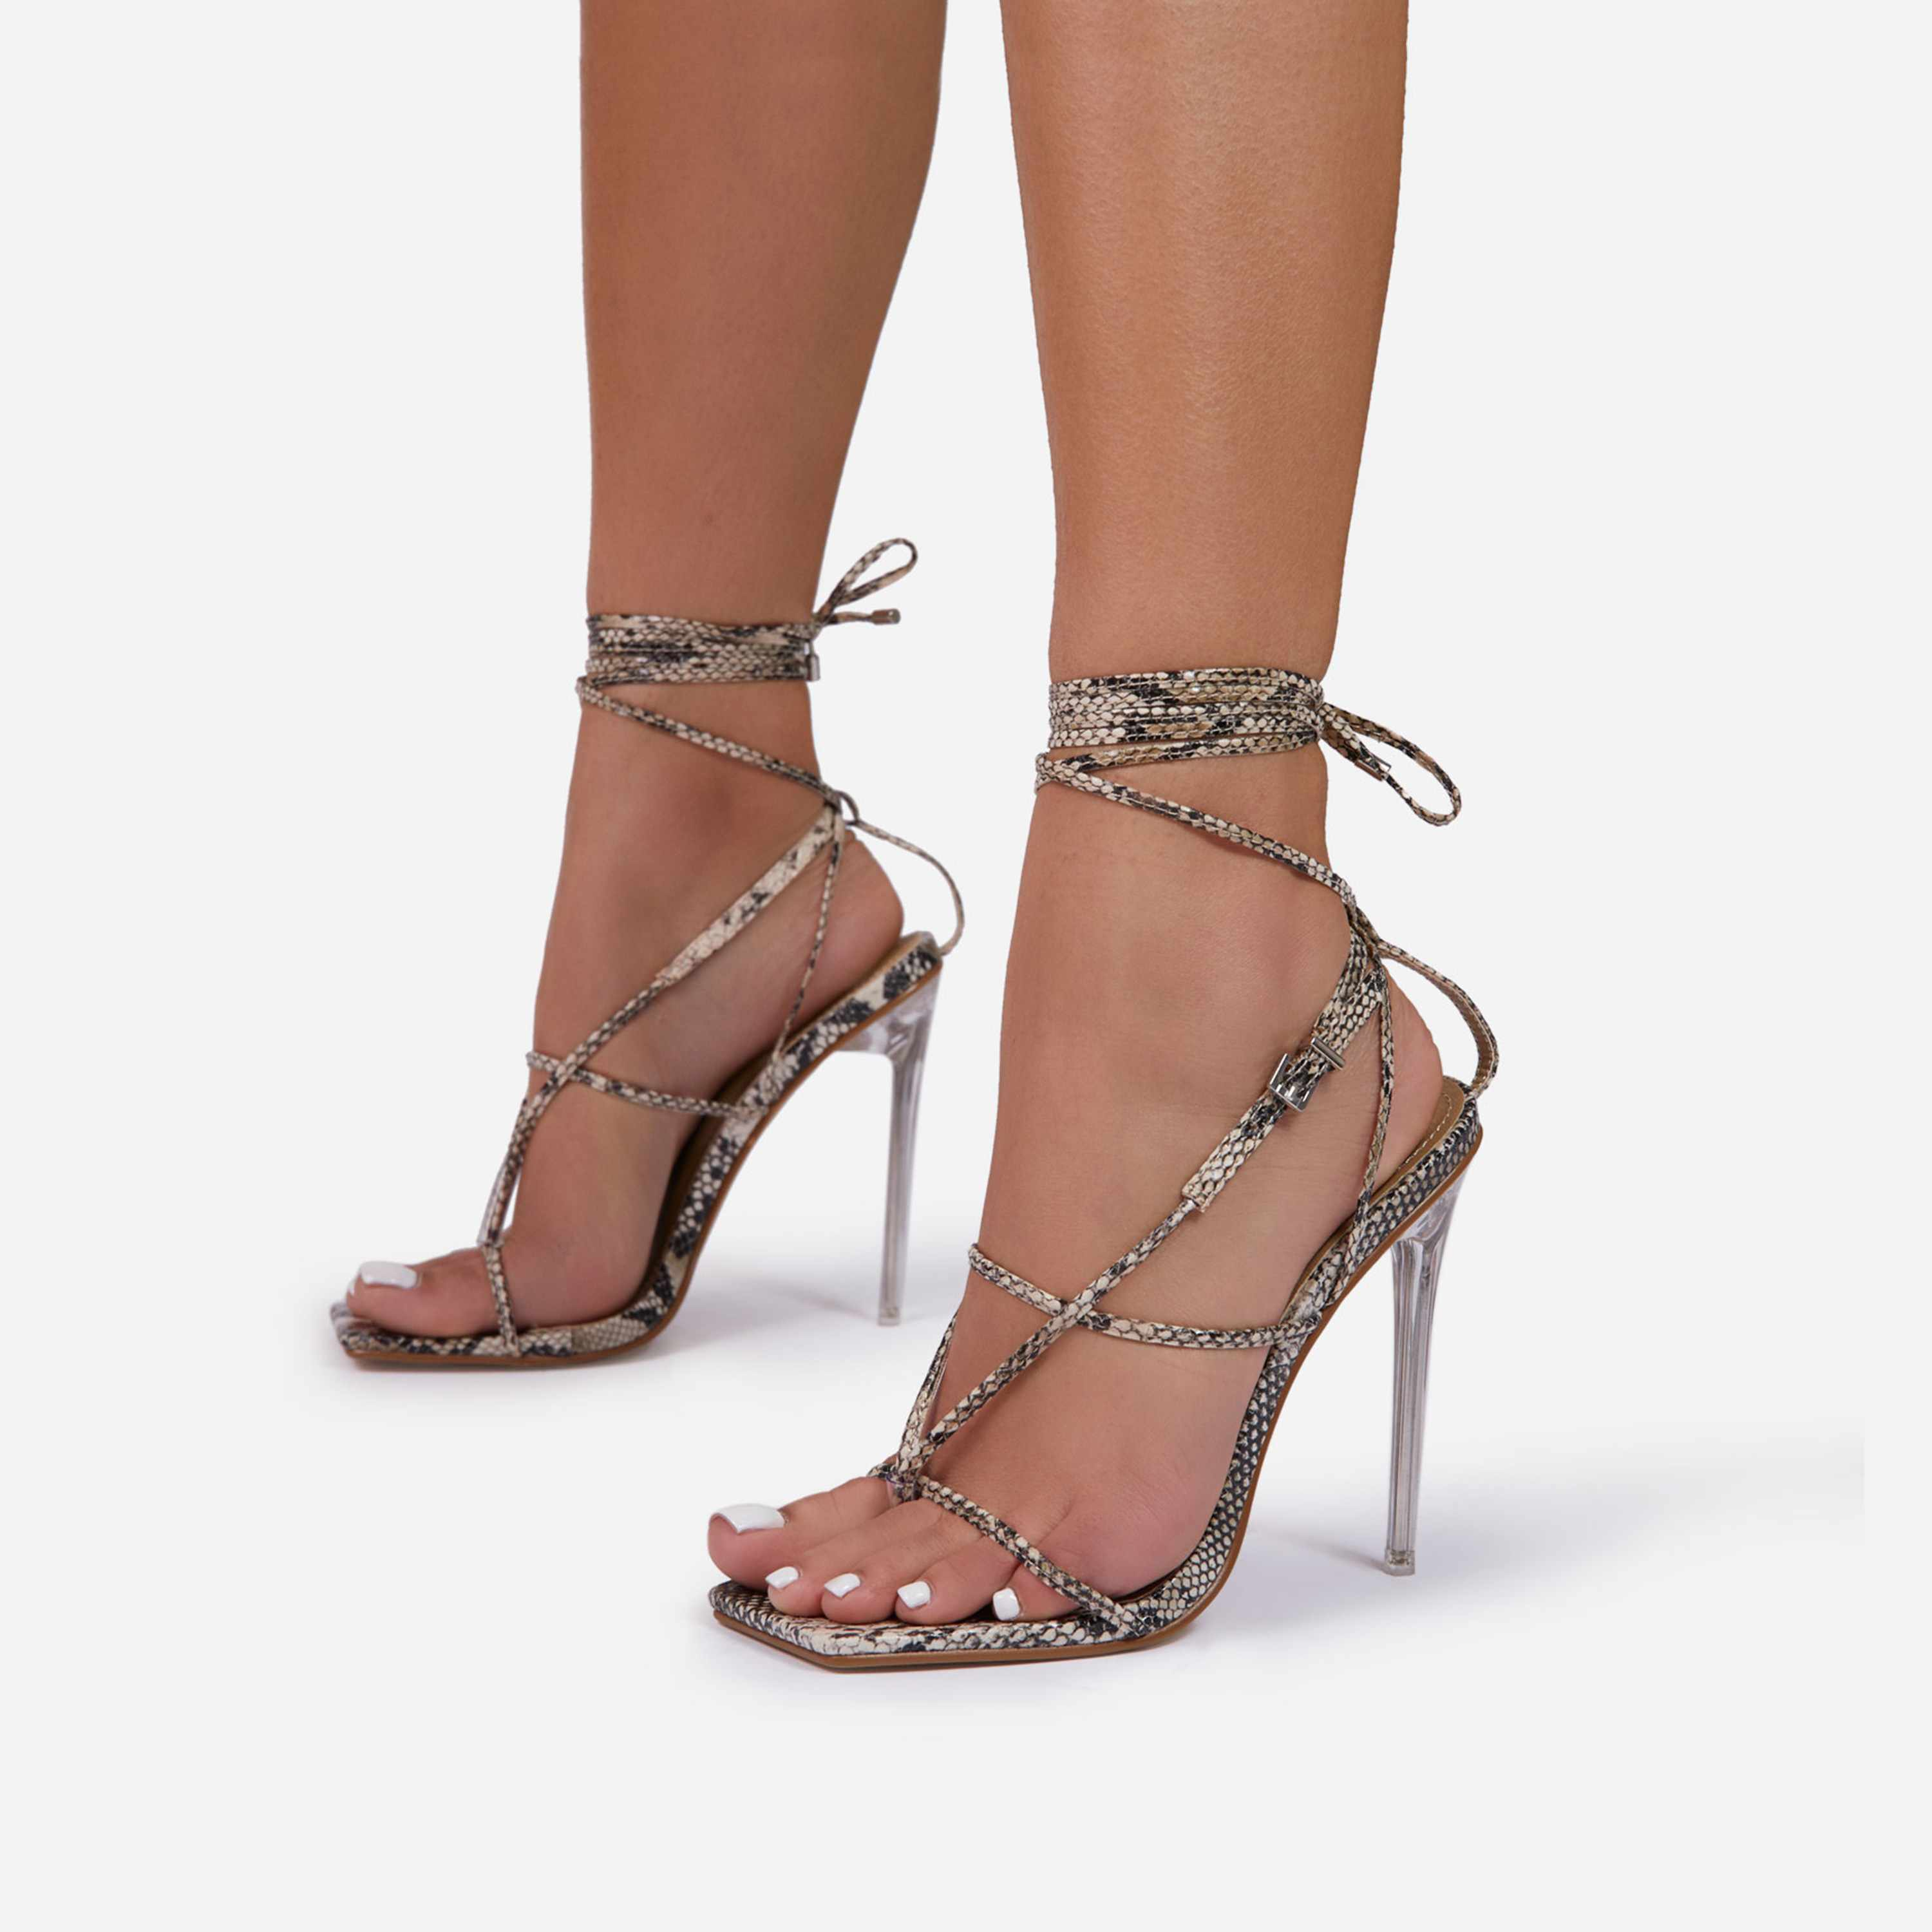 True Square Toe Lace Up Clear Perspex Heel In Nude Snake Print Faux Leather